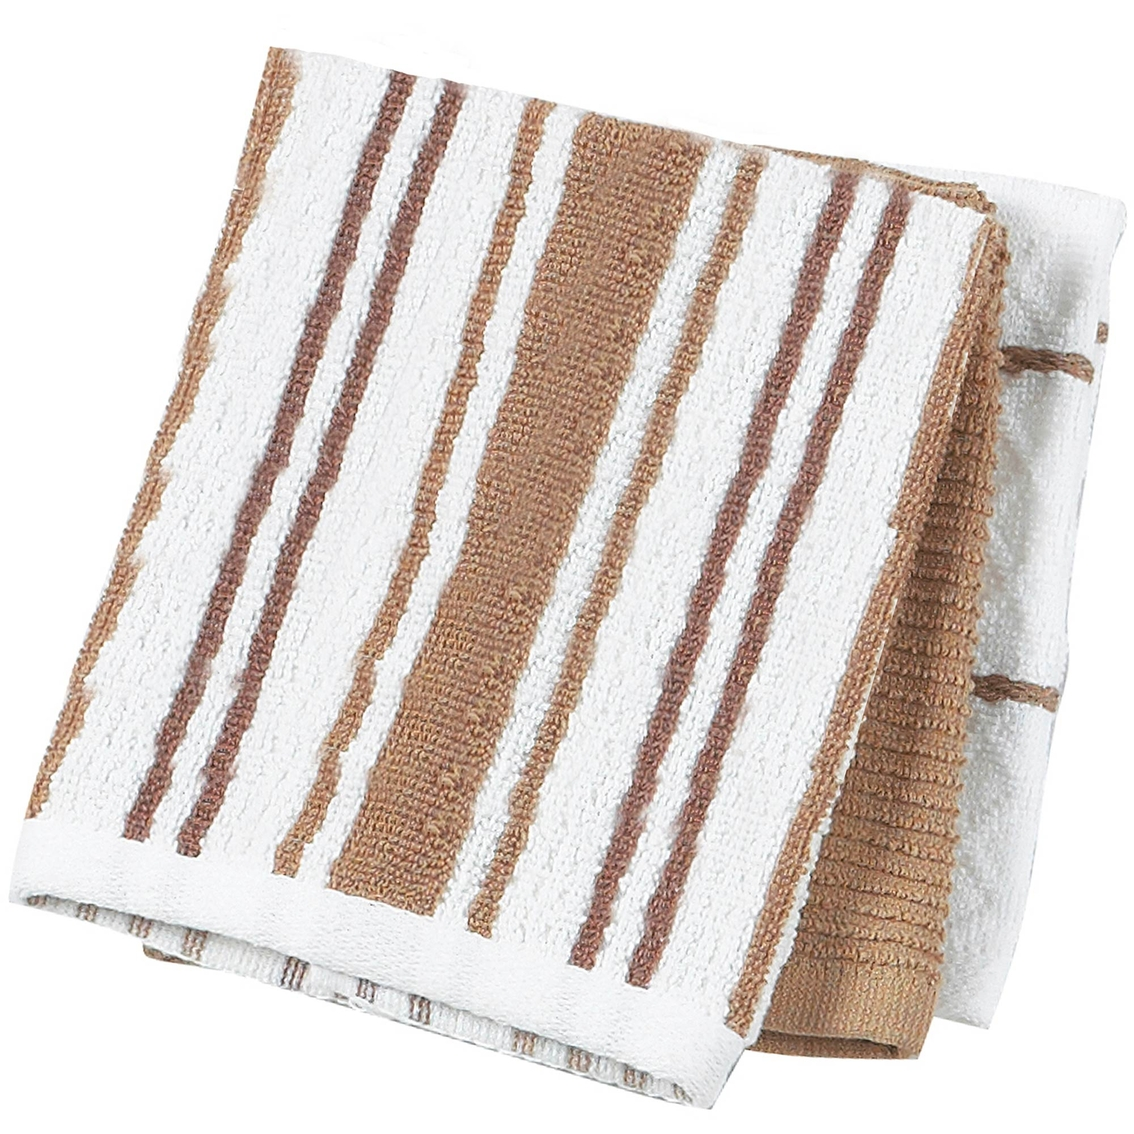 Kay dee designs cafe express dish cloths 3 pc set table Kay dee designs kitchen towels